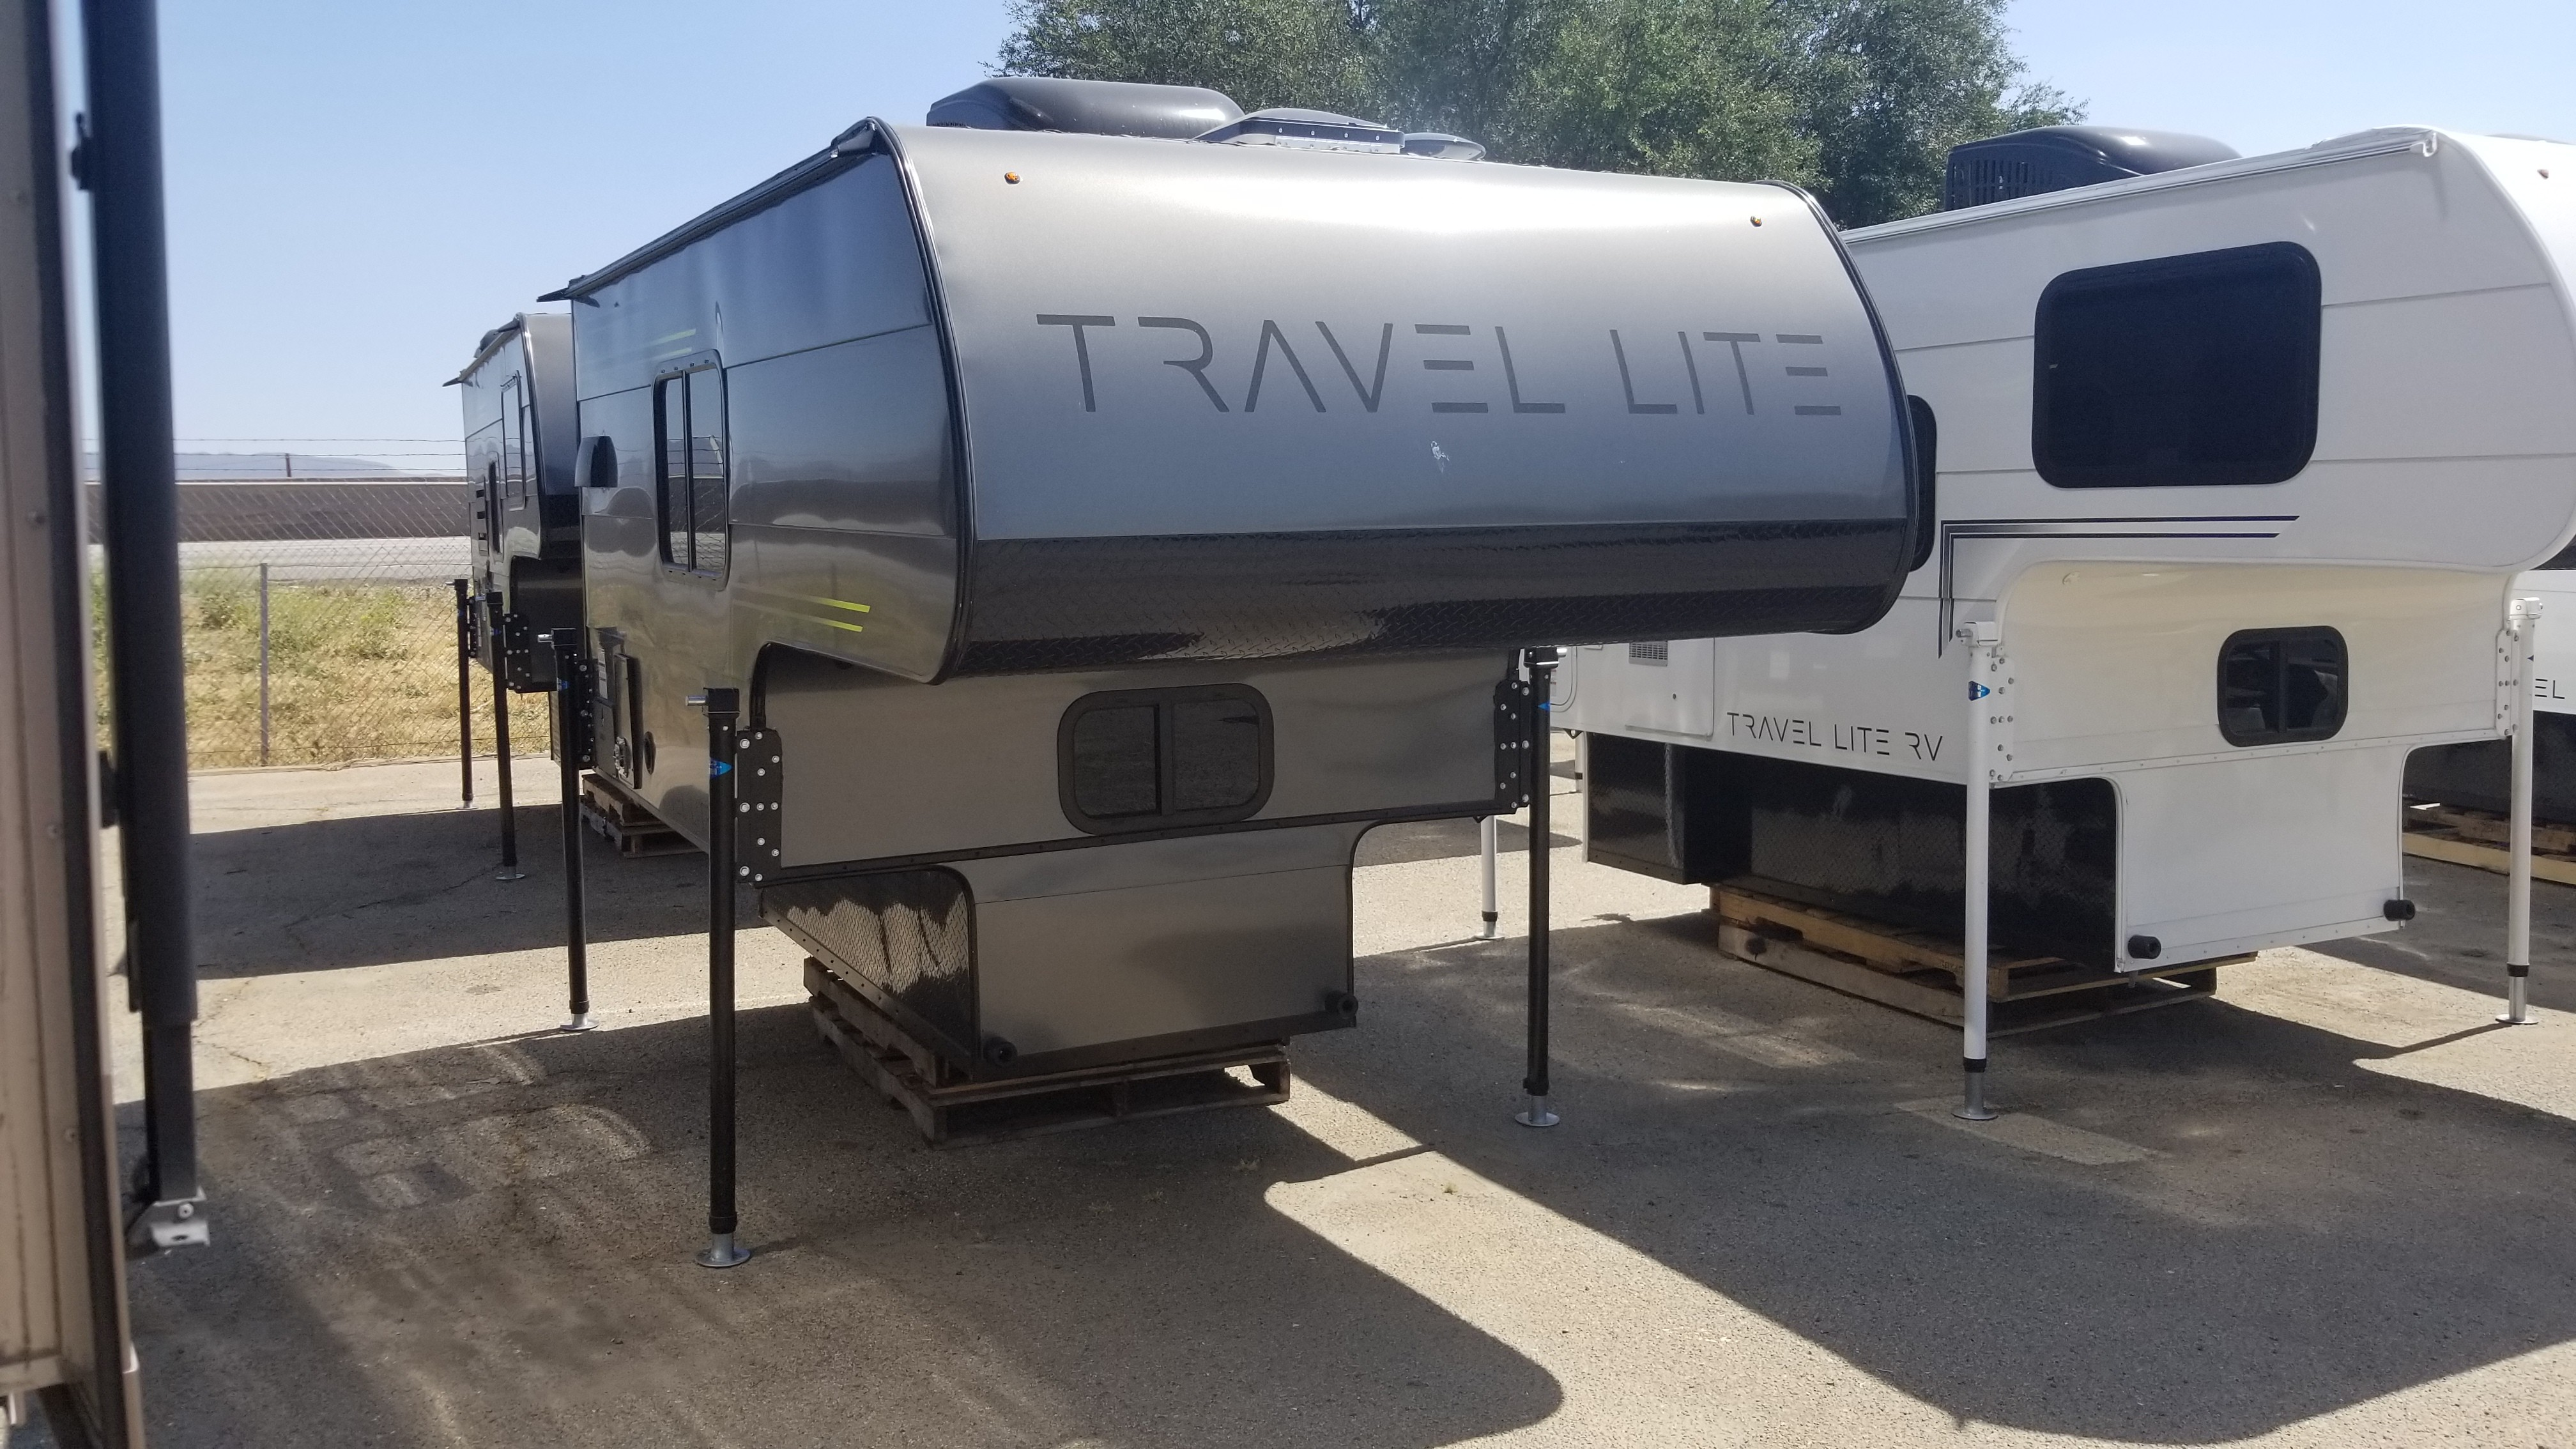 New 2019 Travel Lite 690FD - 1110 lbs dry in Beaumont, CA